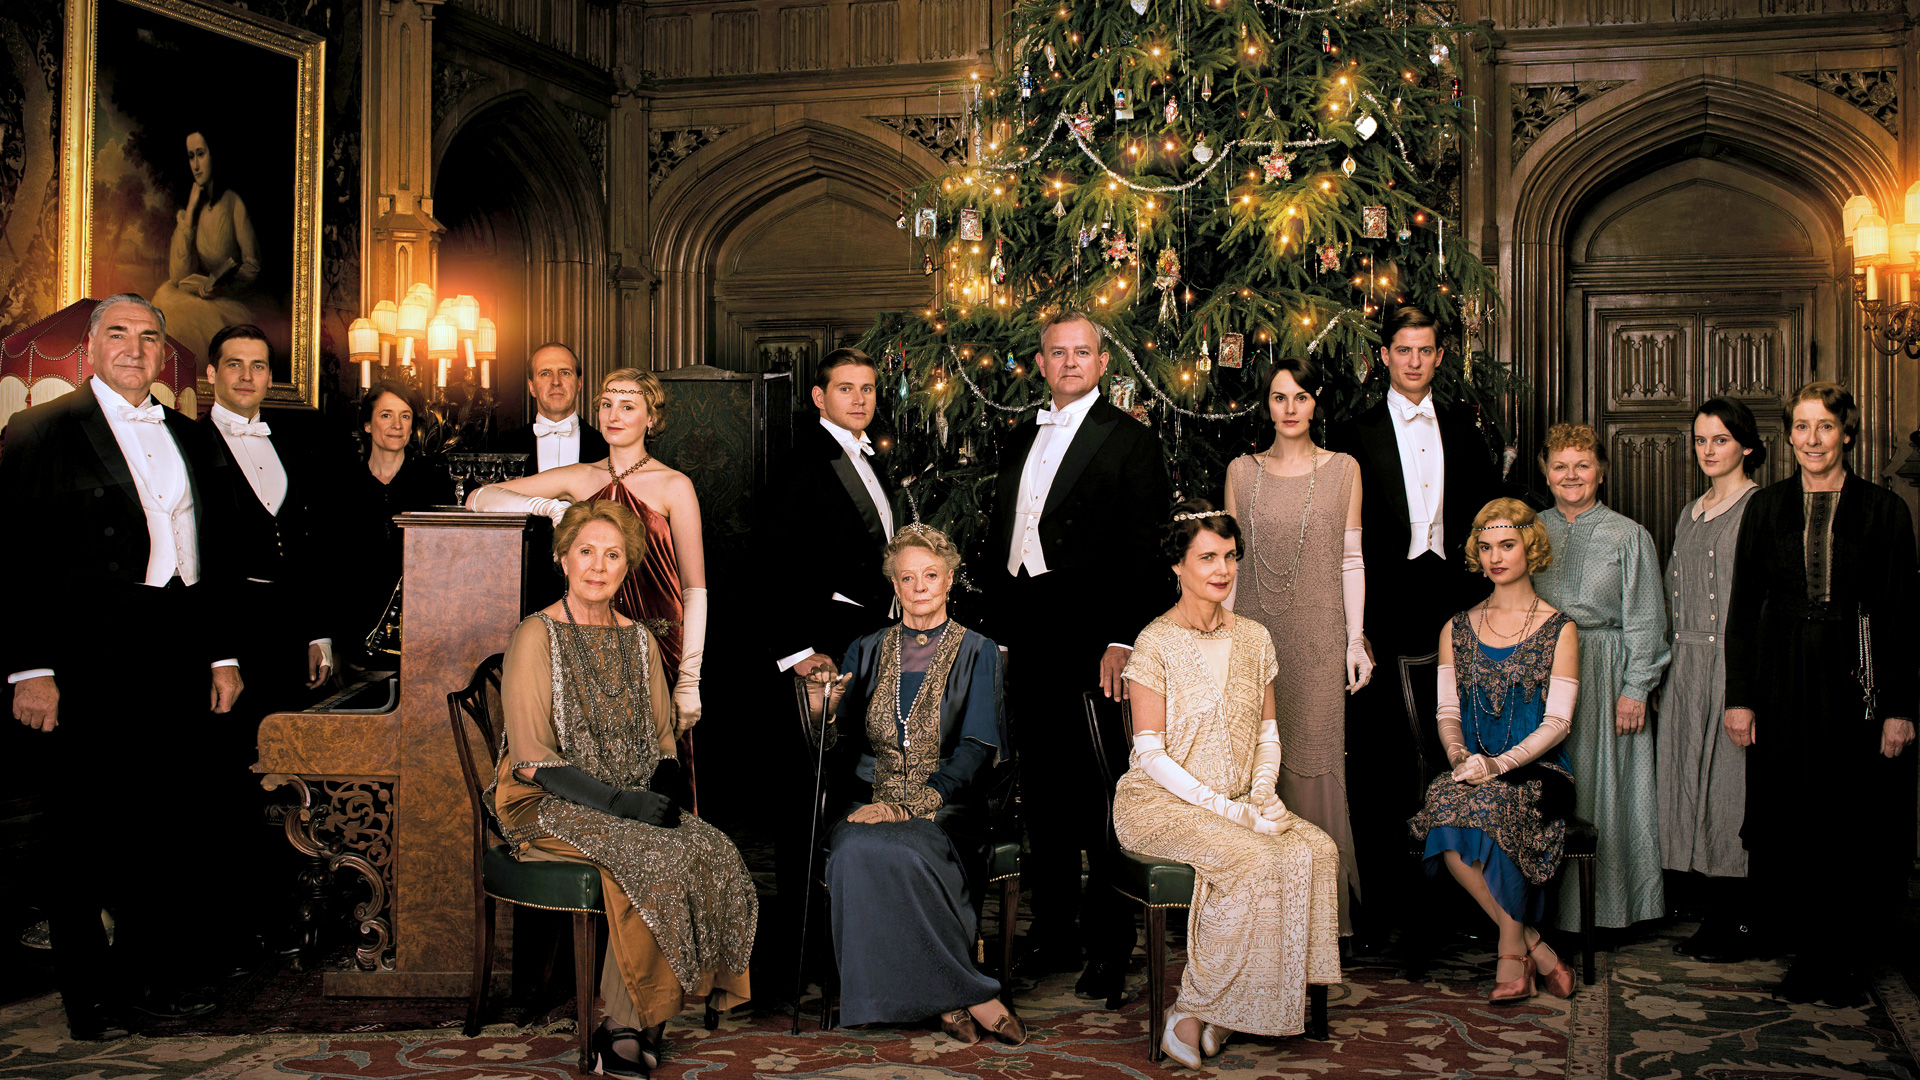 Downton abbey season 5 viewers guide to the season for Classic house voices